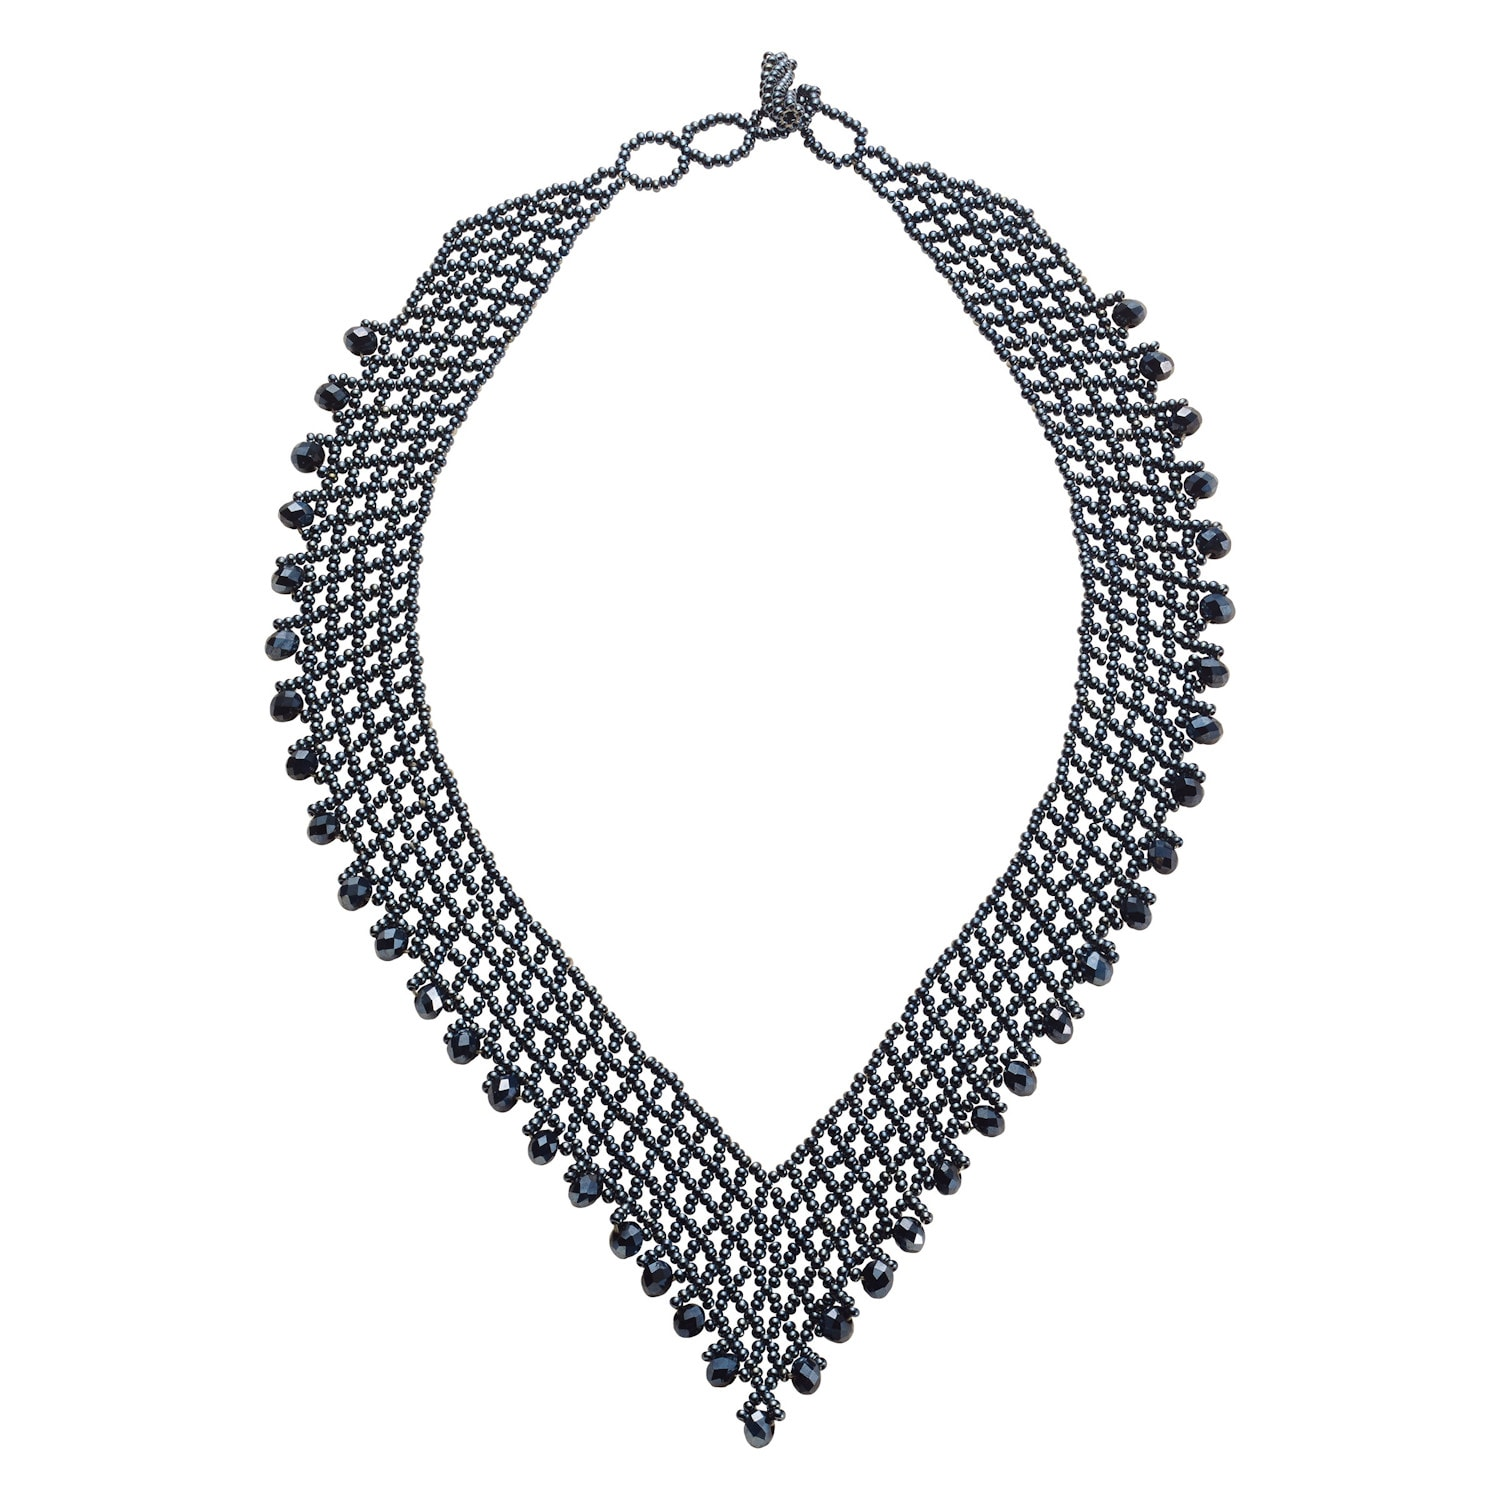 cb18ad51bd20 Women s Beaded V-Necklace - Hematite-Colored Beads - Vintage Bib Style